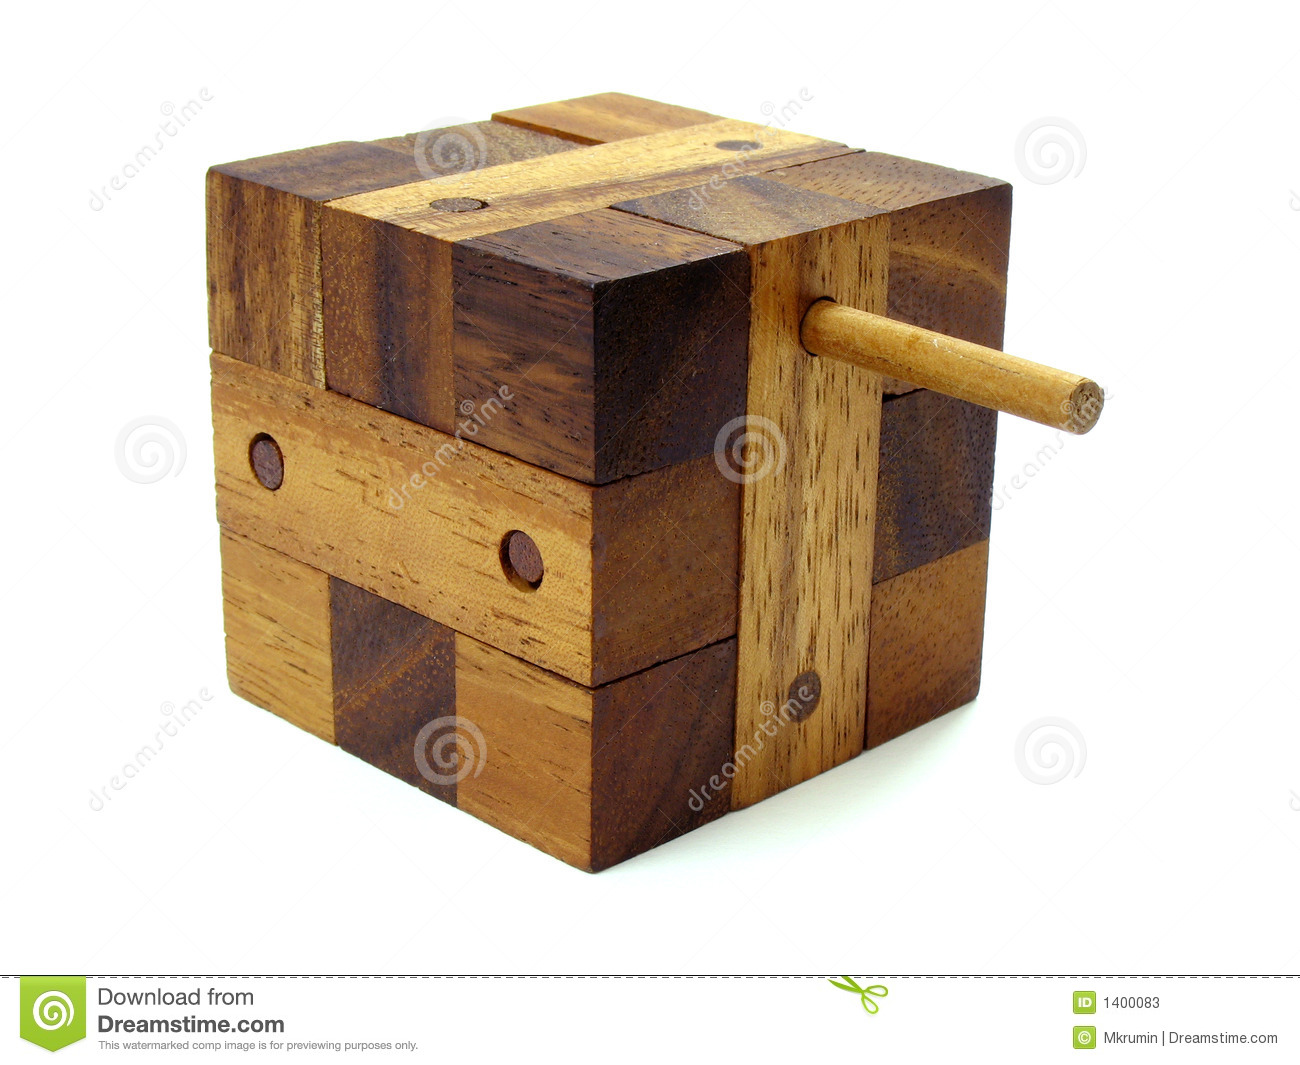 Wooden Cube Puzzle 2 Stock Photos - Image: 1400083